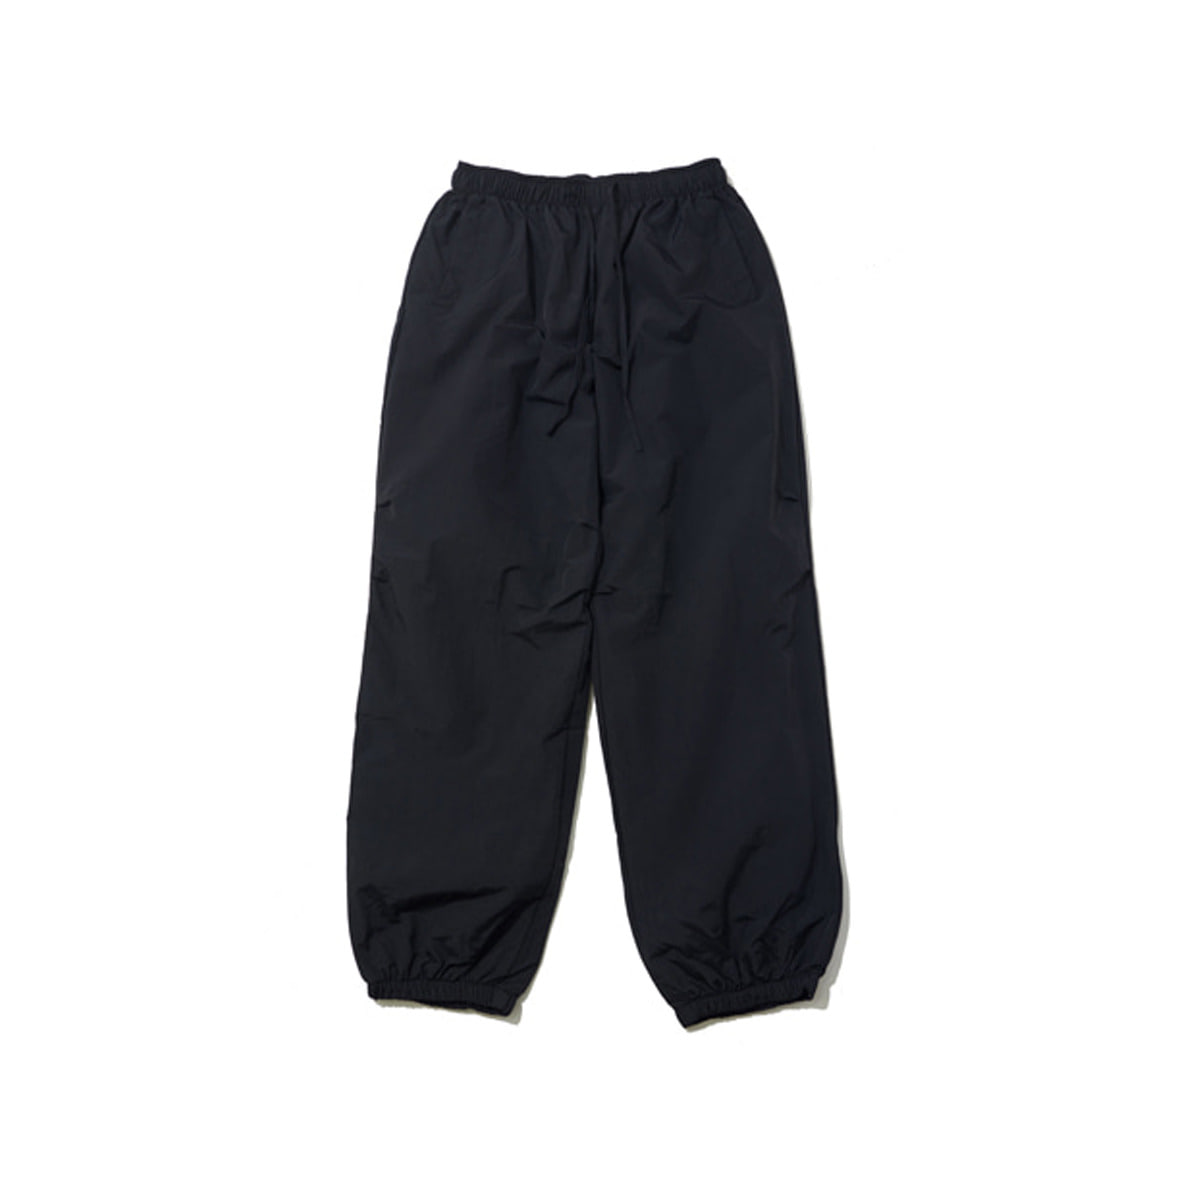 Balloon Pants, Black